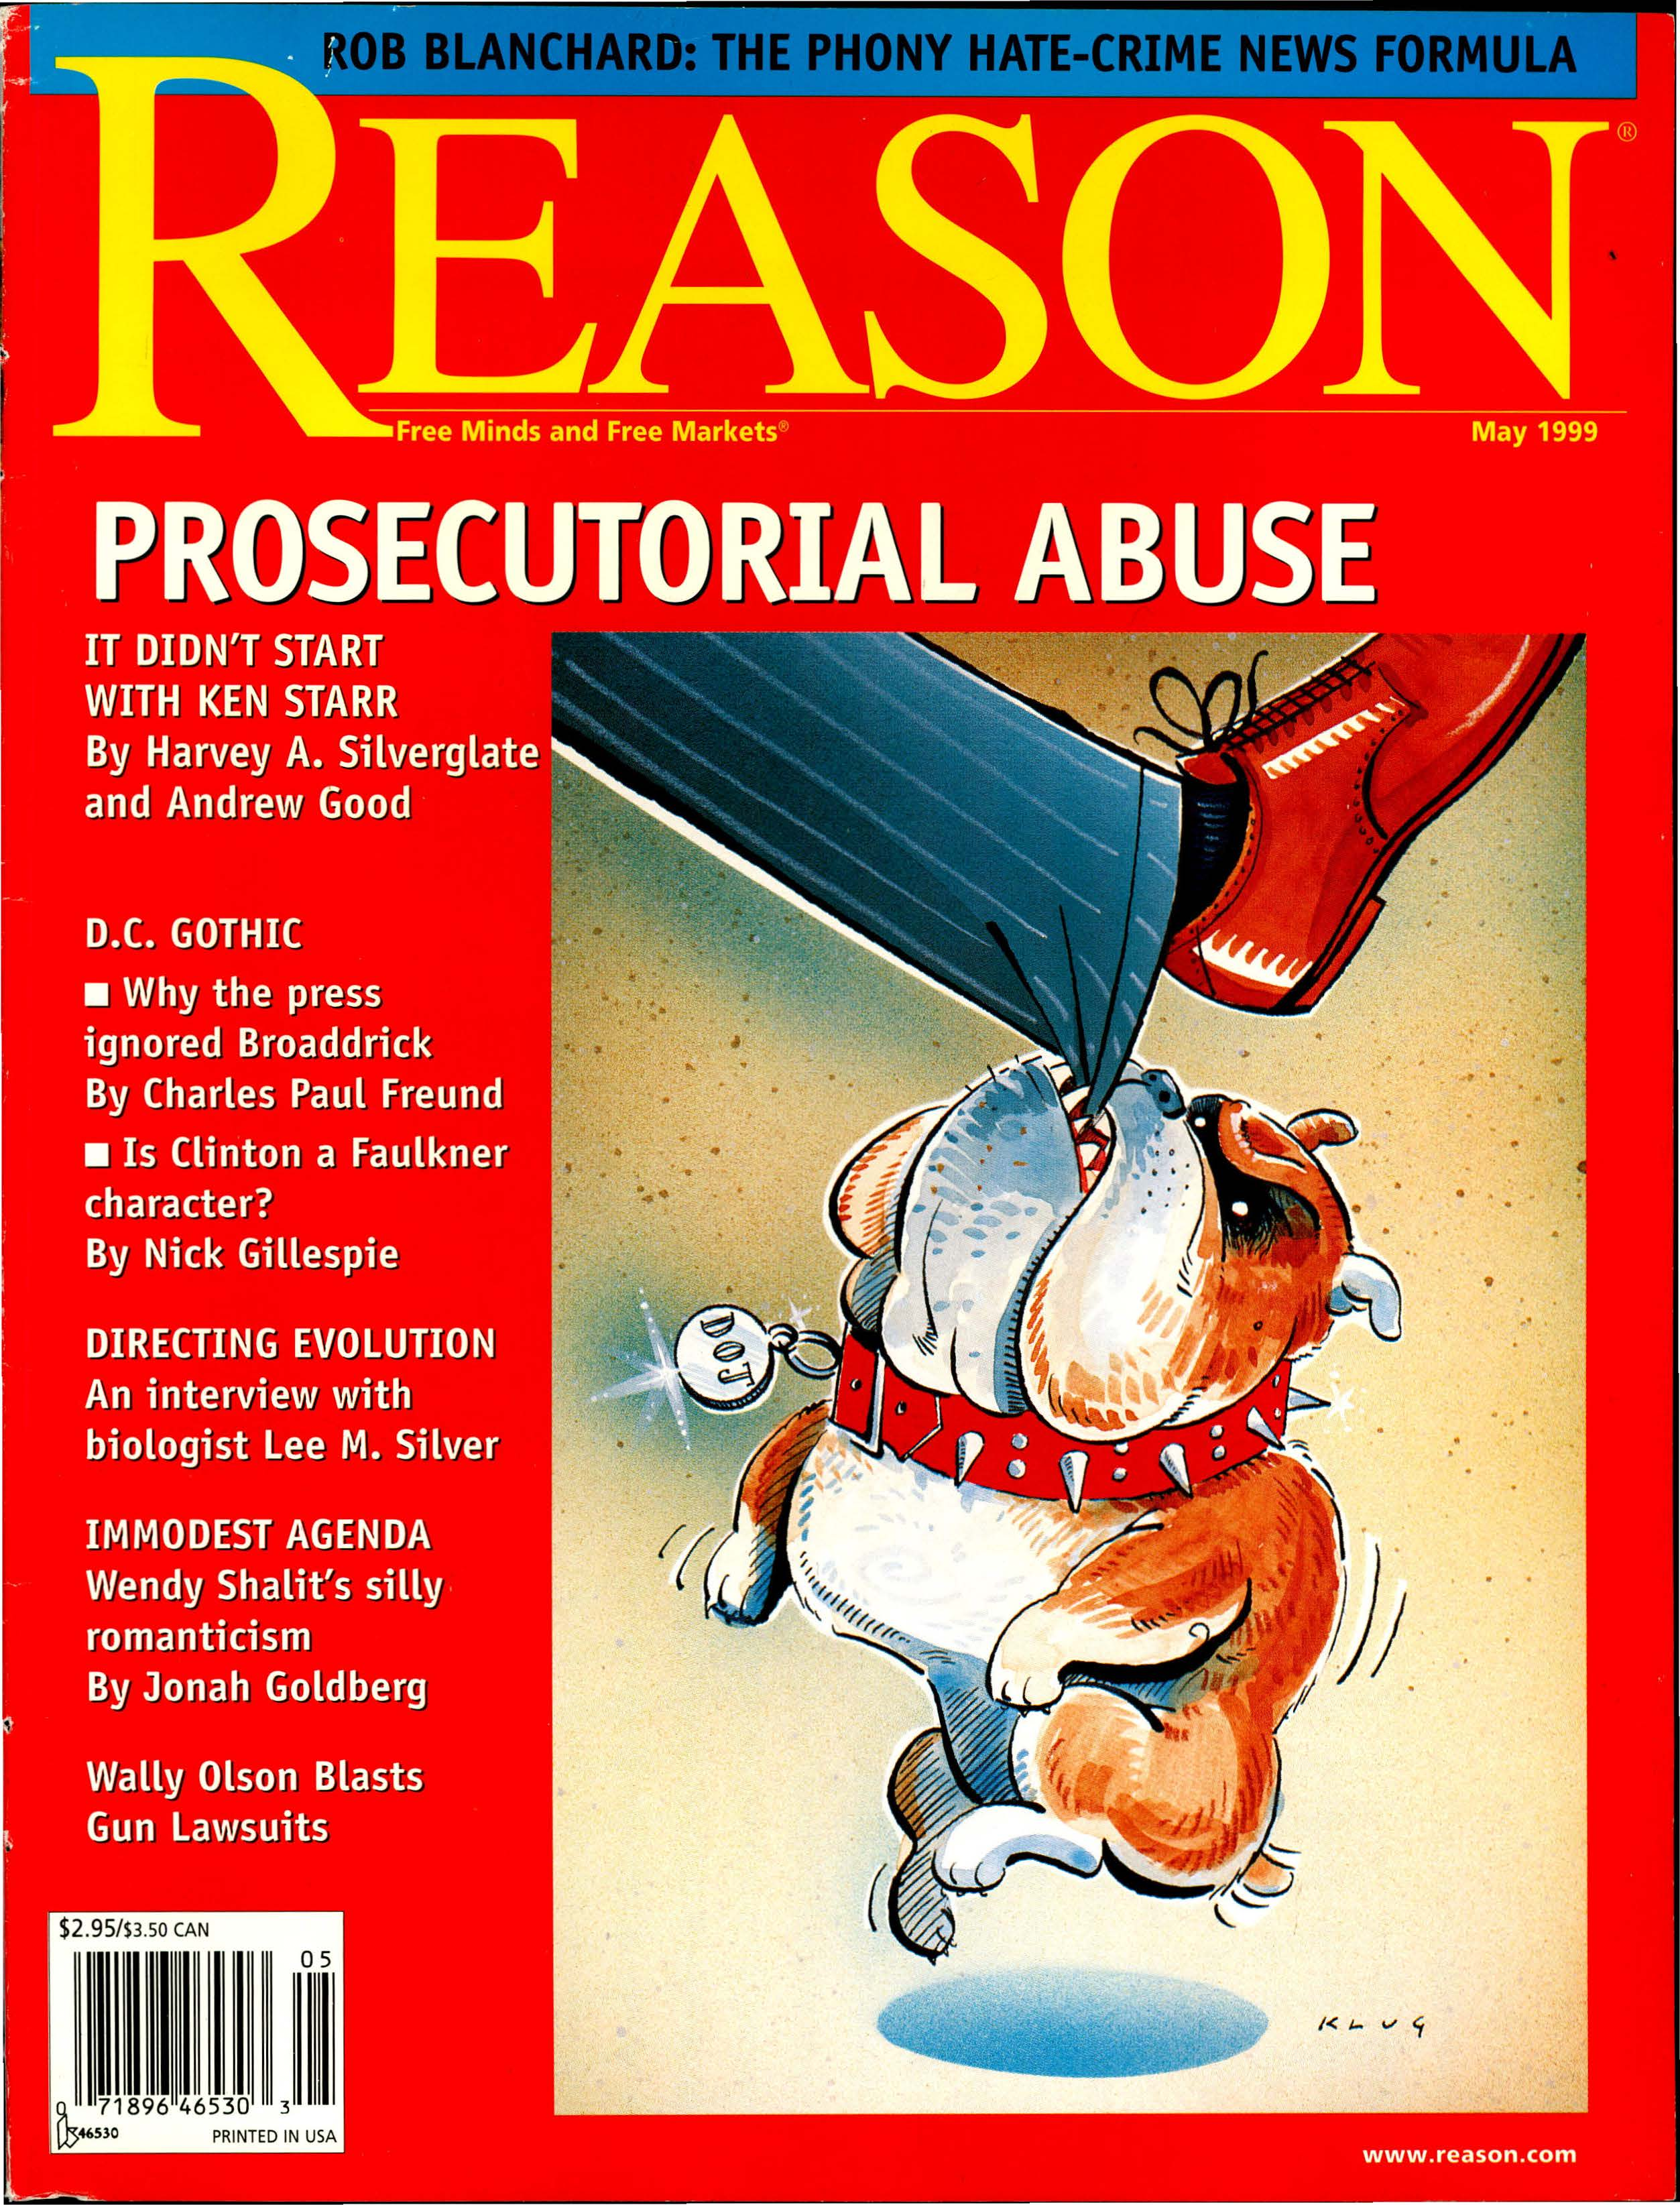 Reason Magazine, May 1999 cover image